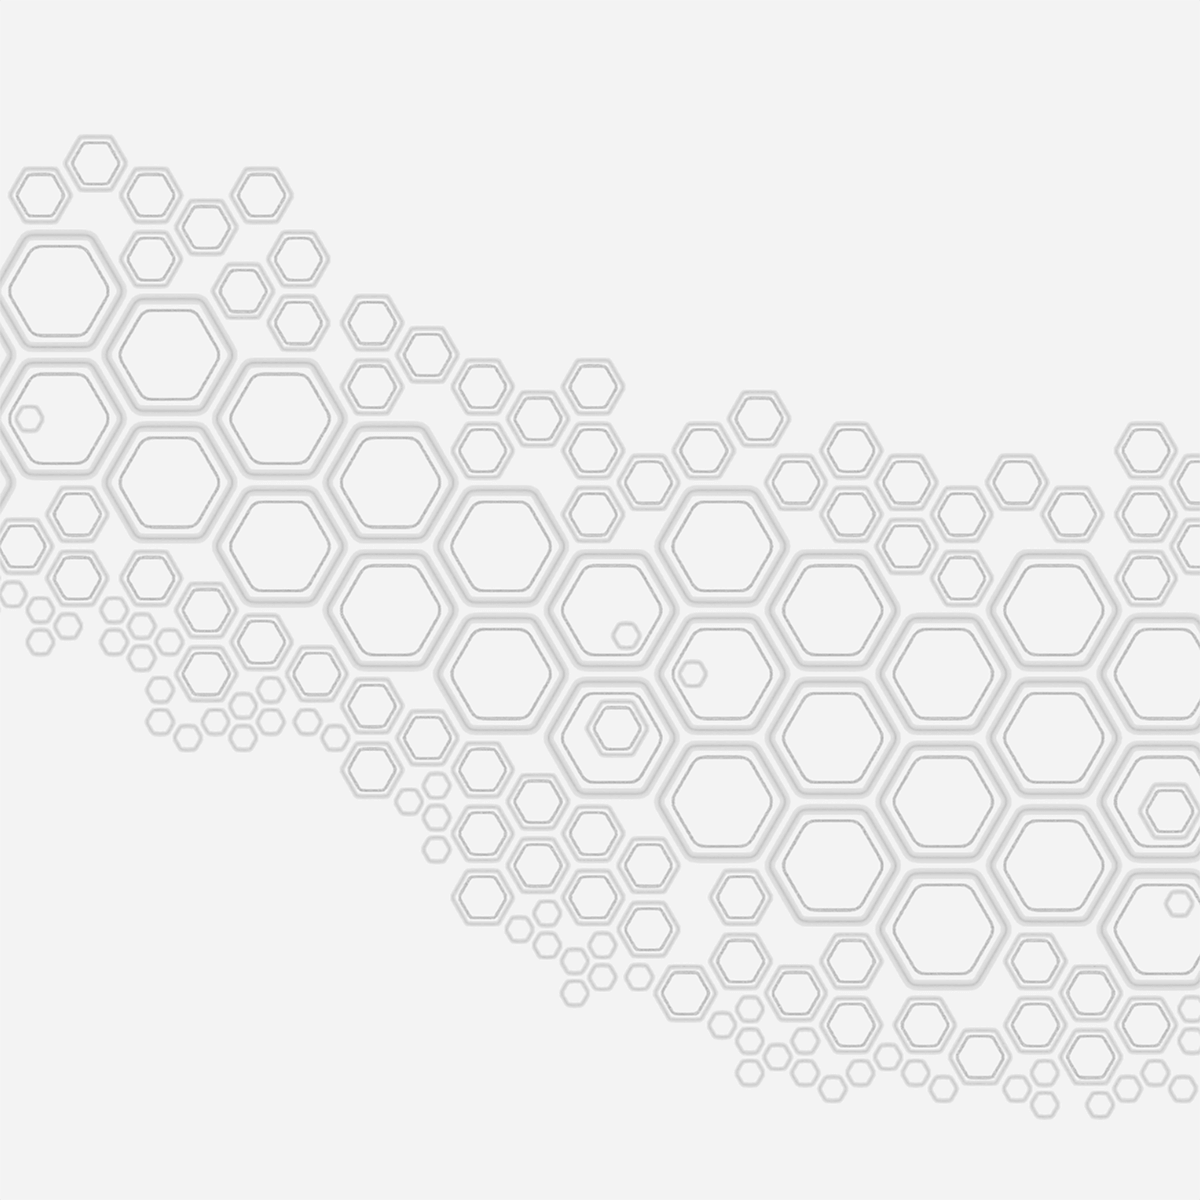 corian textured surfaces mitch cass nature collection hexabee line drawing